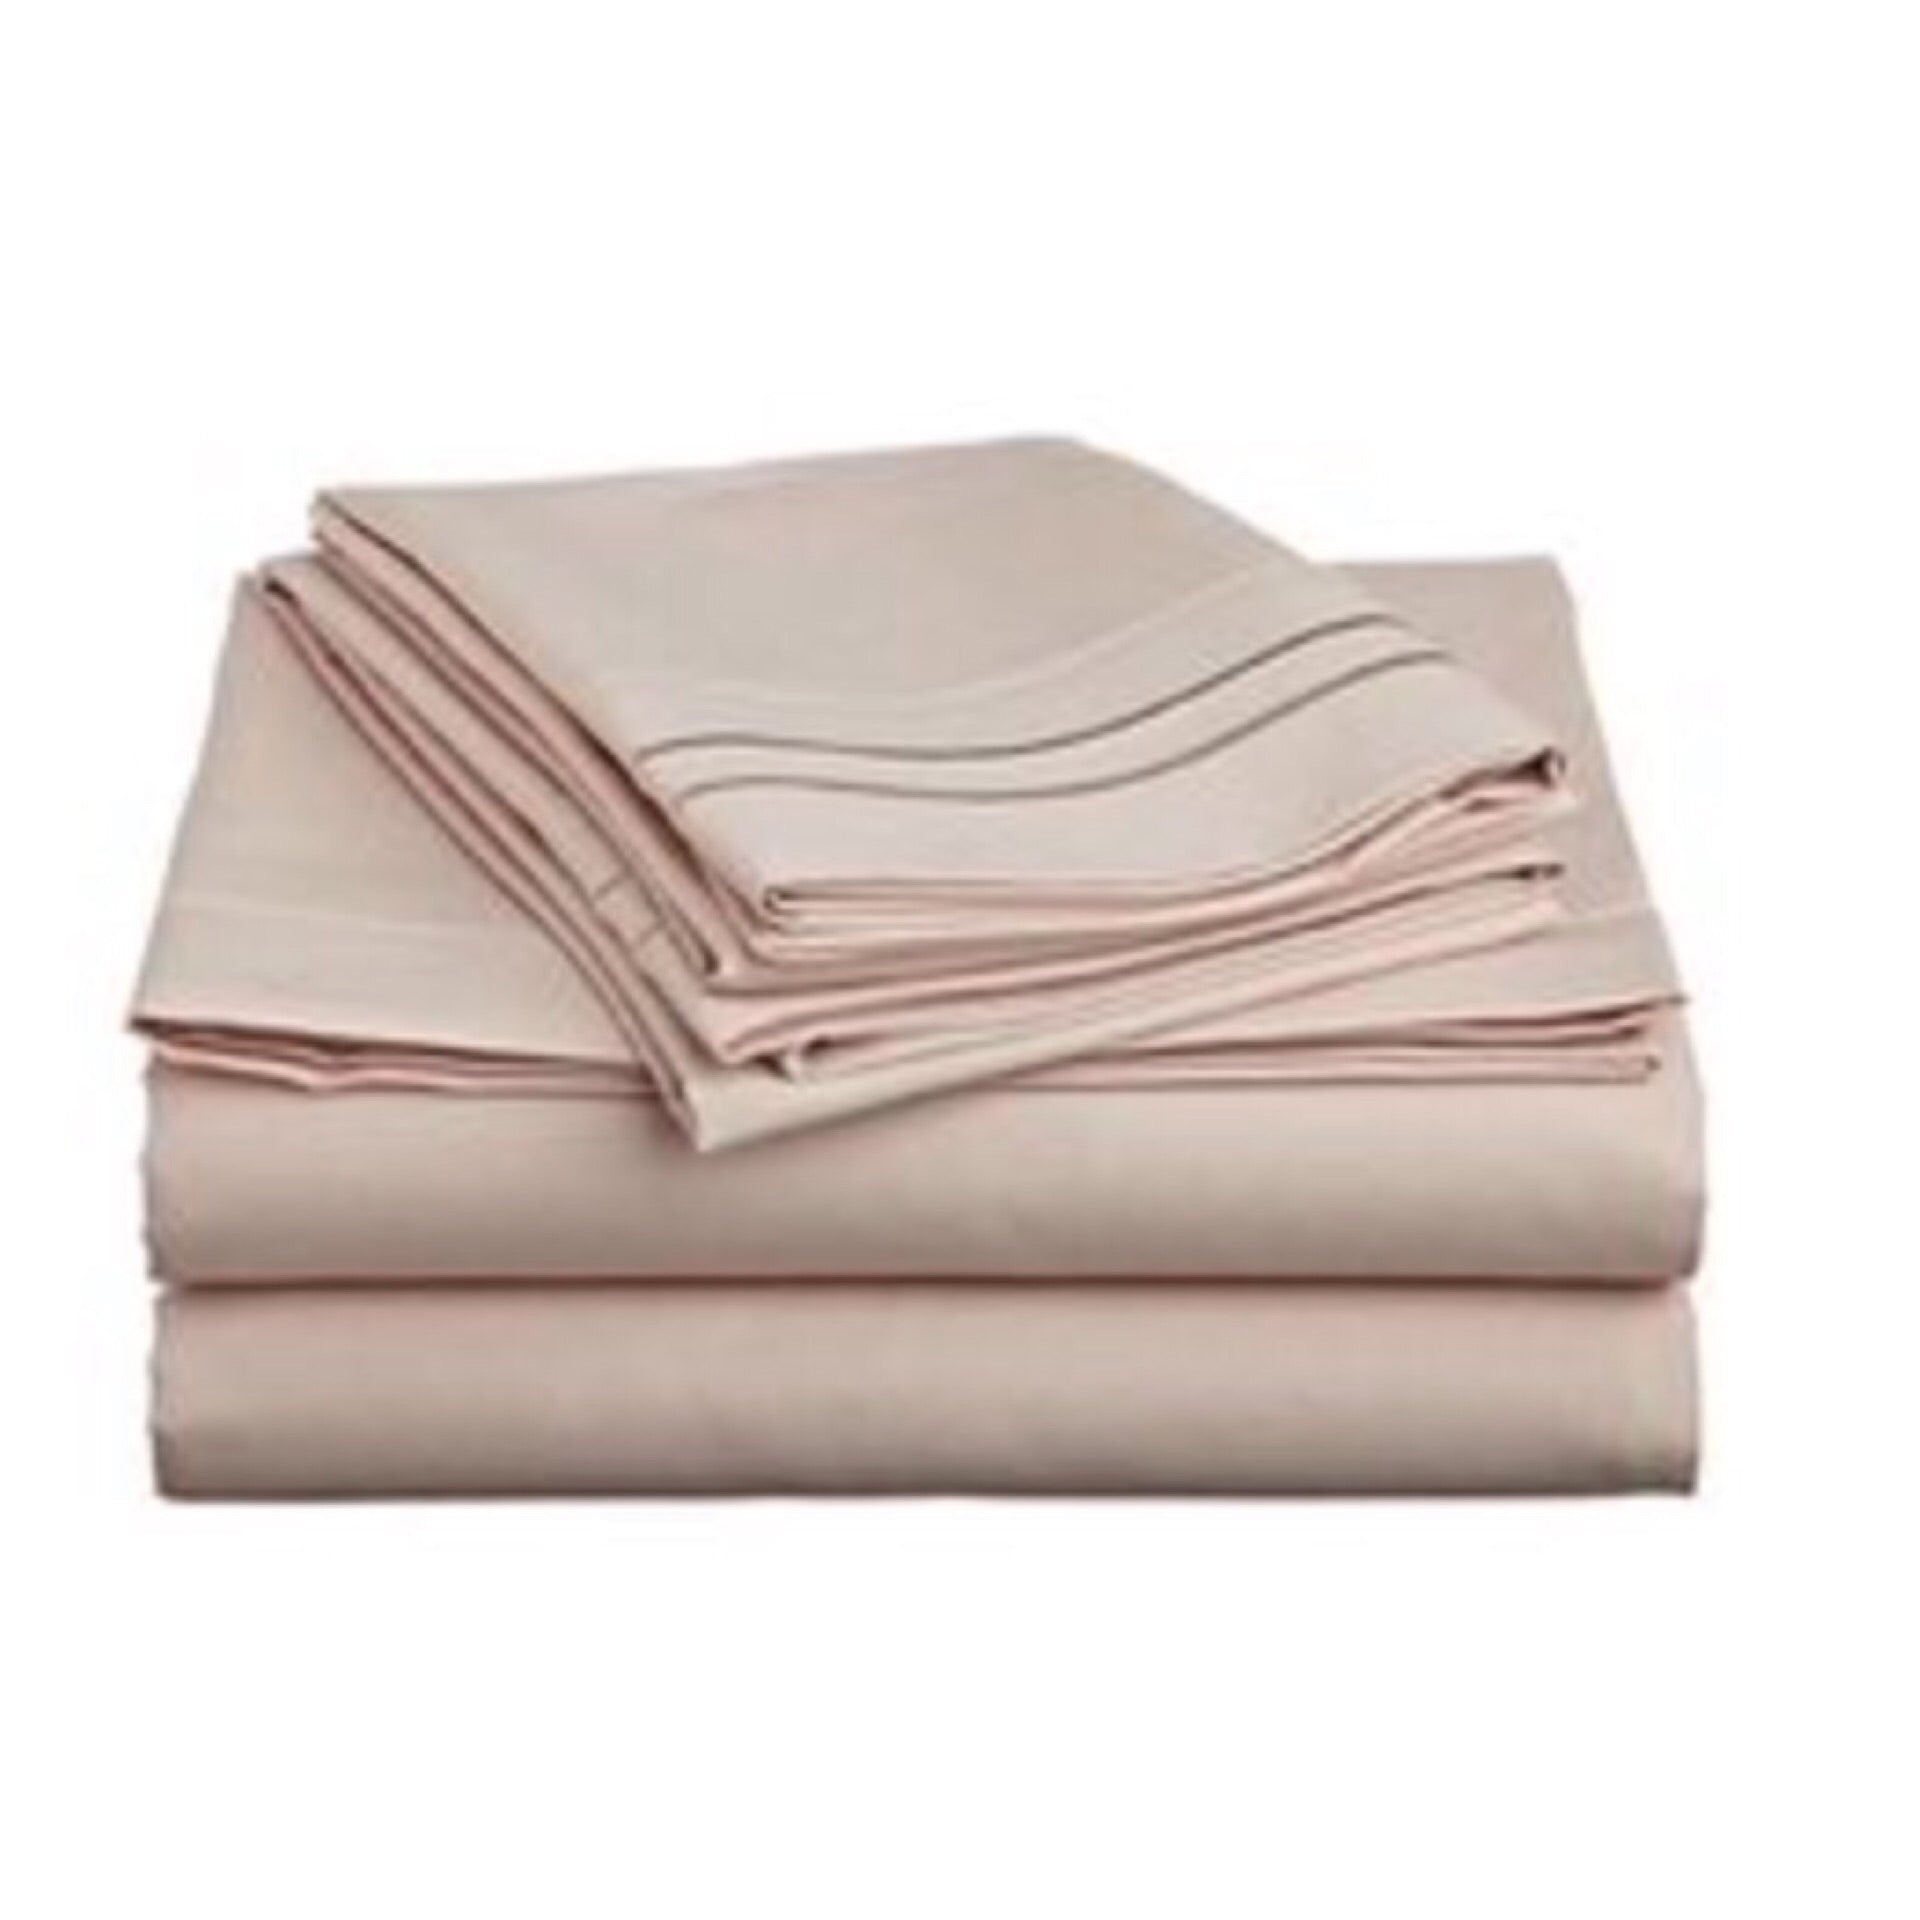 Cream Color 1800 Count Sheets